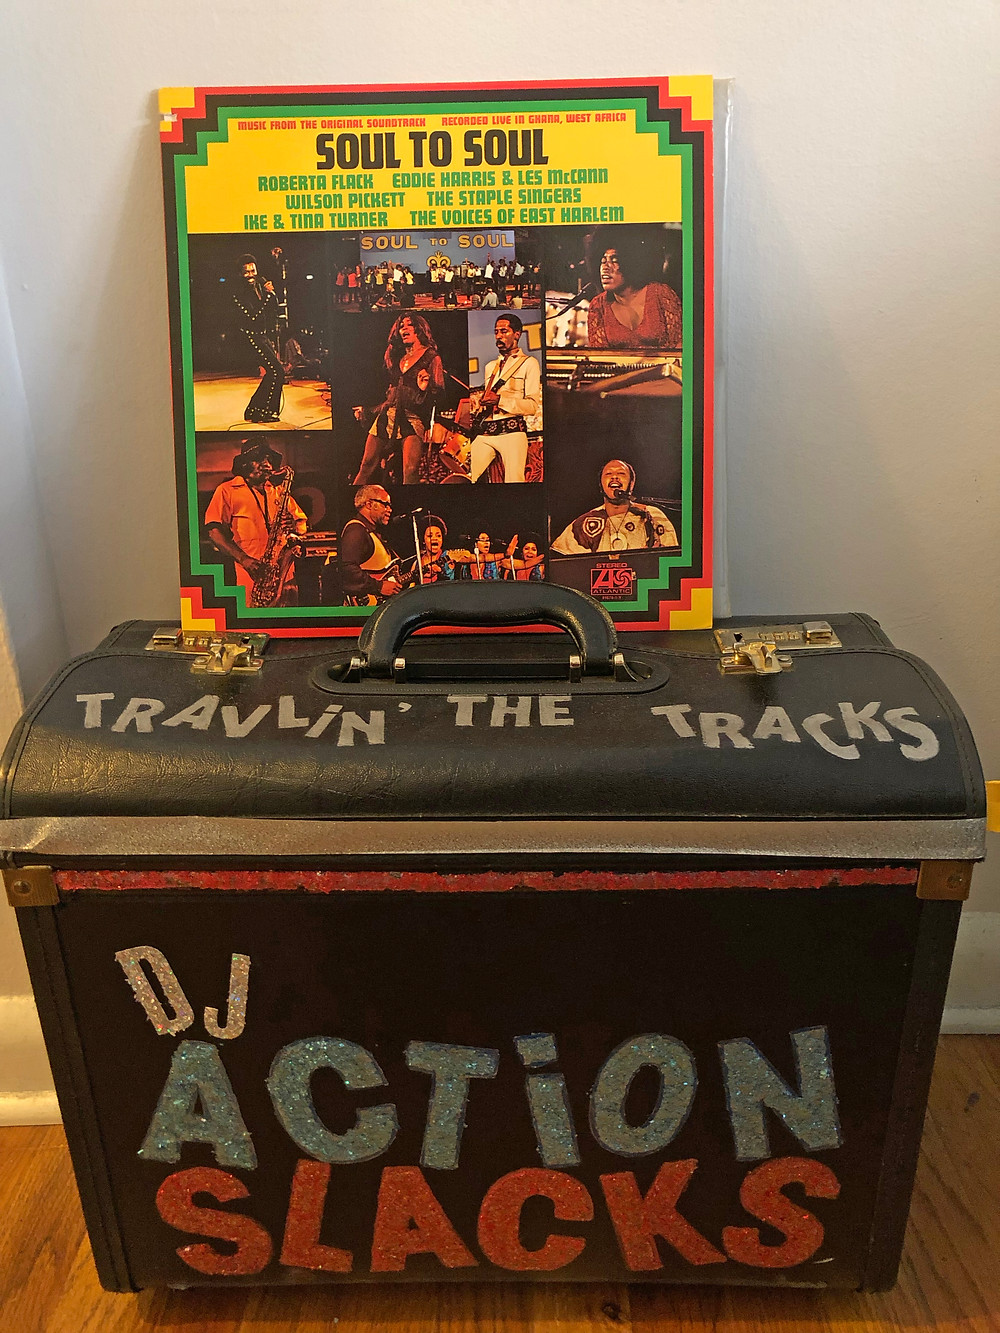 Soul 2 Soul Original Motion Picture Soundtrack 1971, Travlin' the Tracks with DJ Action Slacks